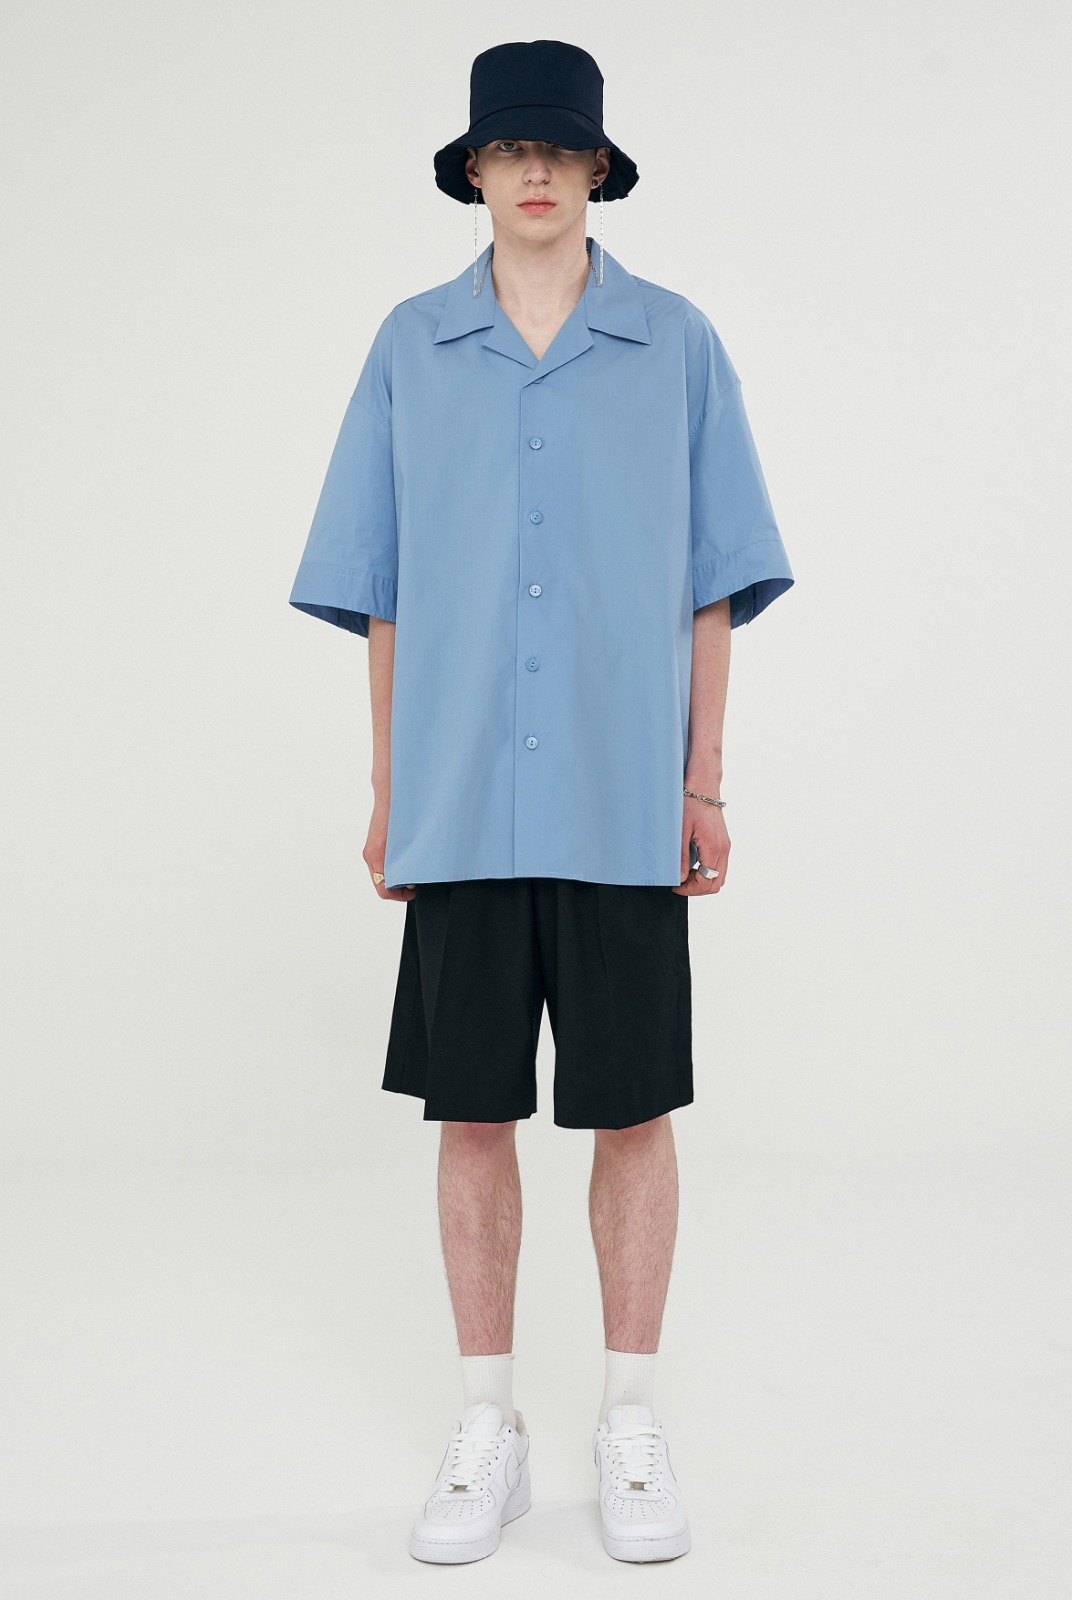 자체브랜드 - 20 SUMMER LOOKBOOK